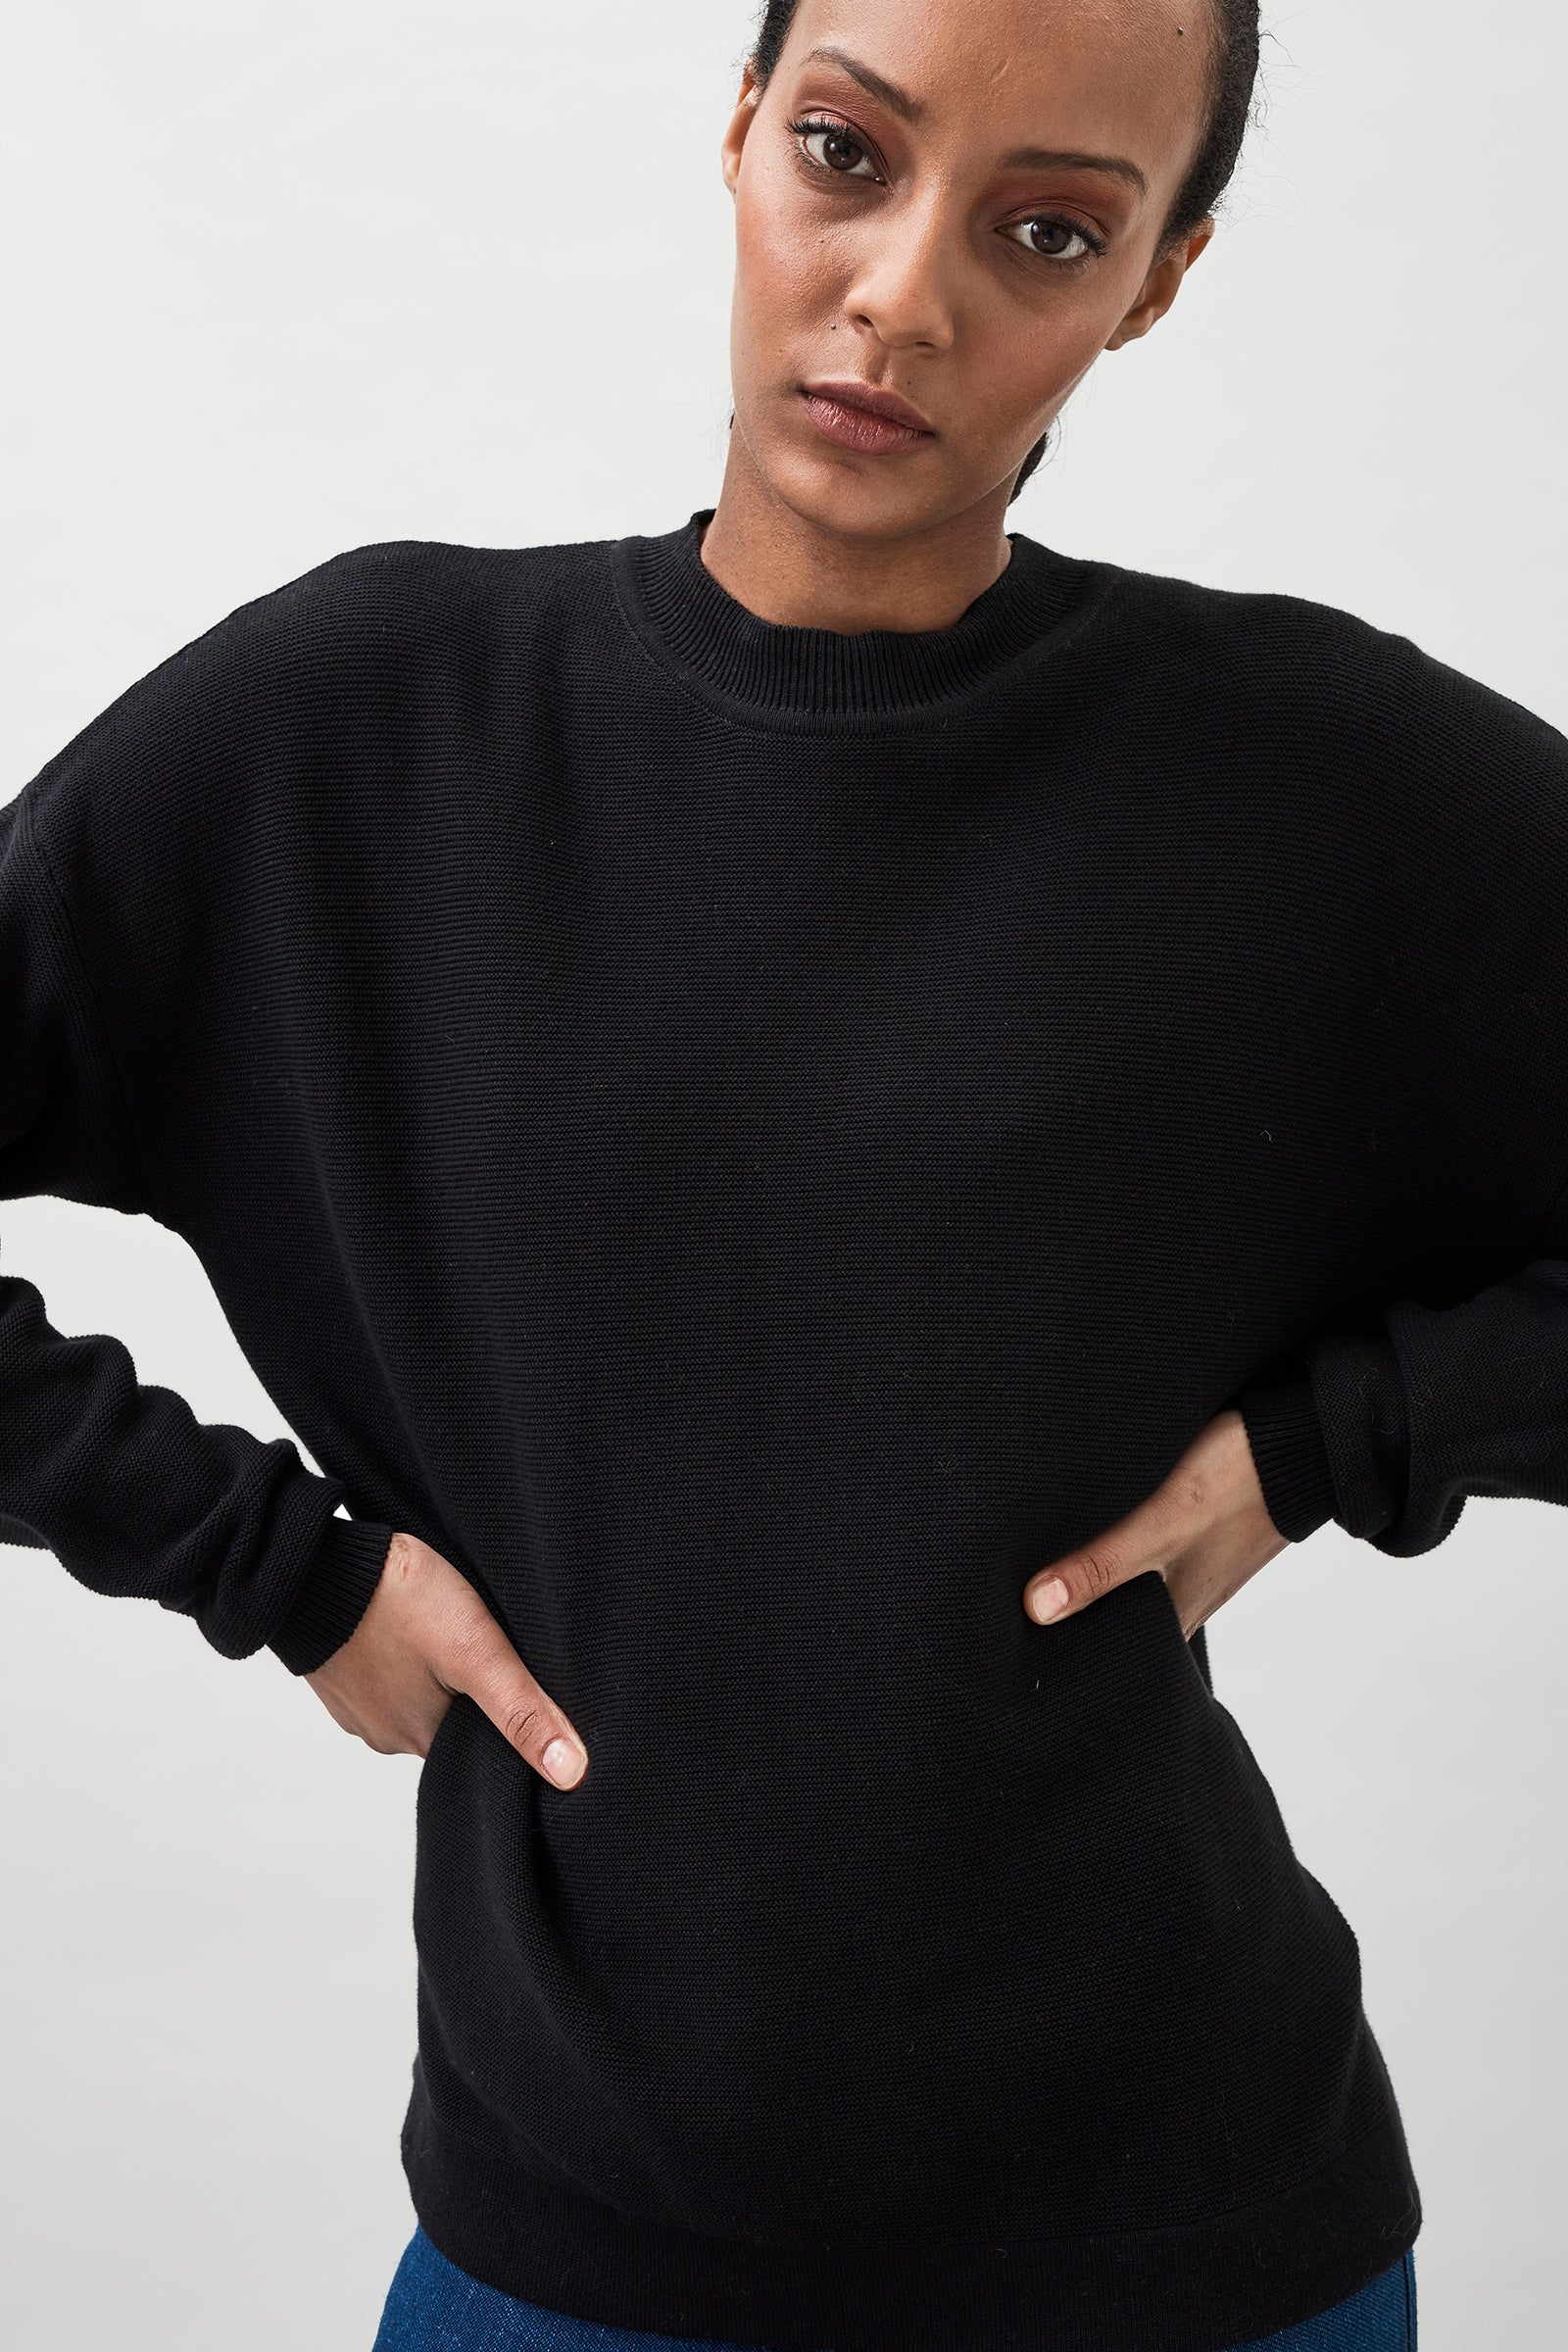 Nela Garter Stitch Organic Cotton Sweater with a slightly oversized fit and ribbed crewneck.